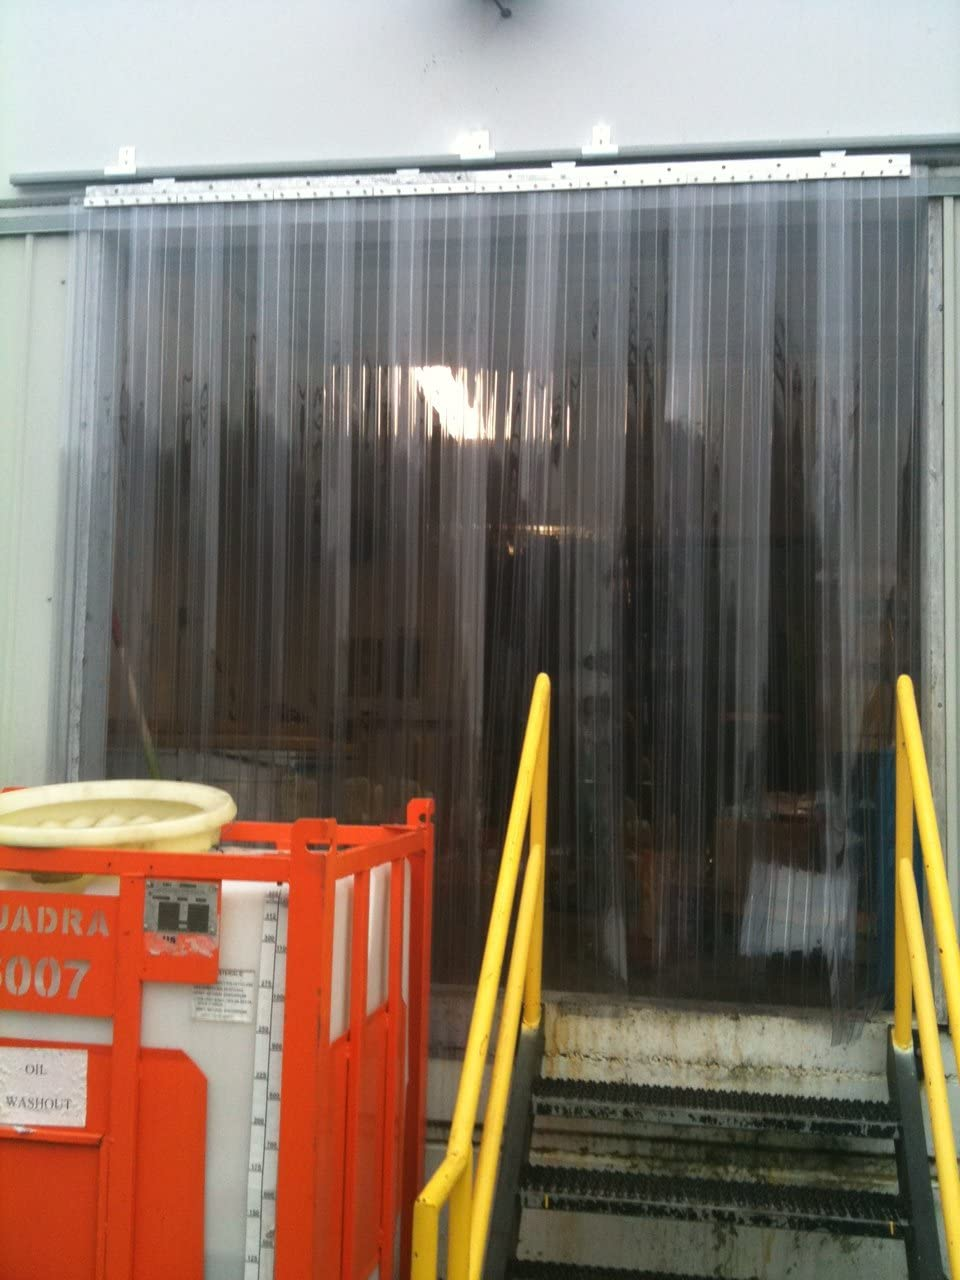 Strip-Curtains.com: Strip Door Curtain - 48 in. (4 ft) width X 96 in. (8 ft) height - Ribbed Anti Scratch Standard 8 in. strips with 50% overlap - common door kit (Hardware included)